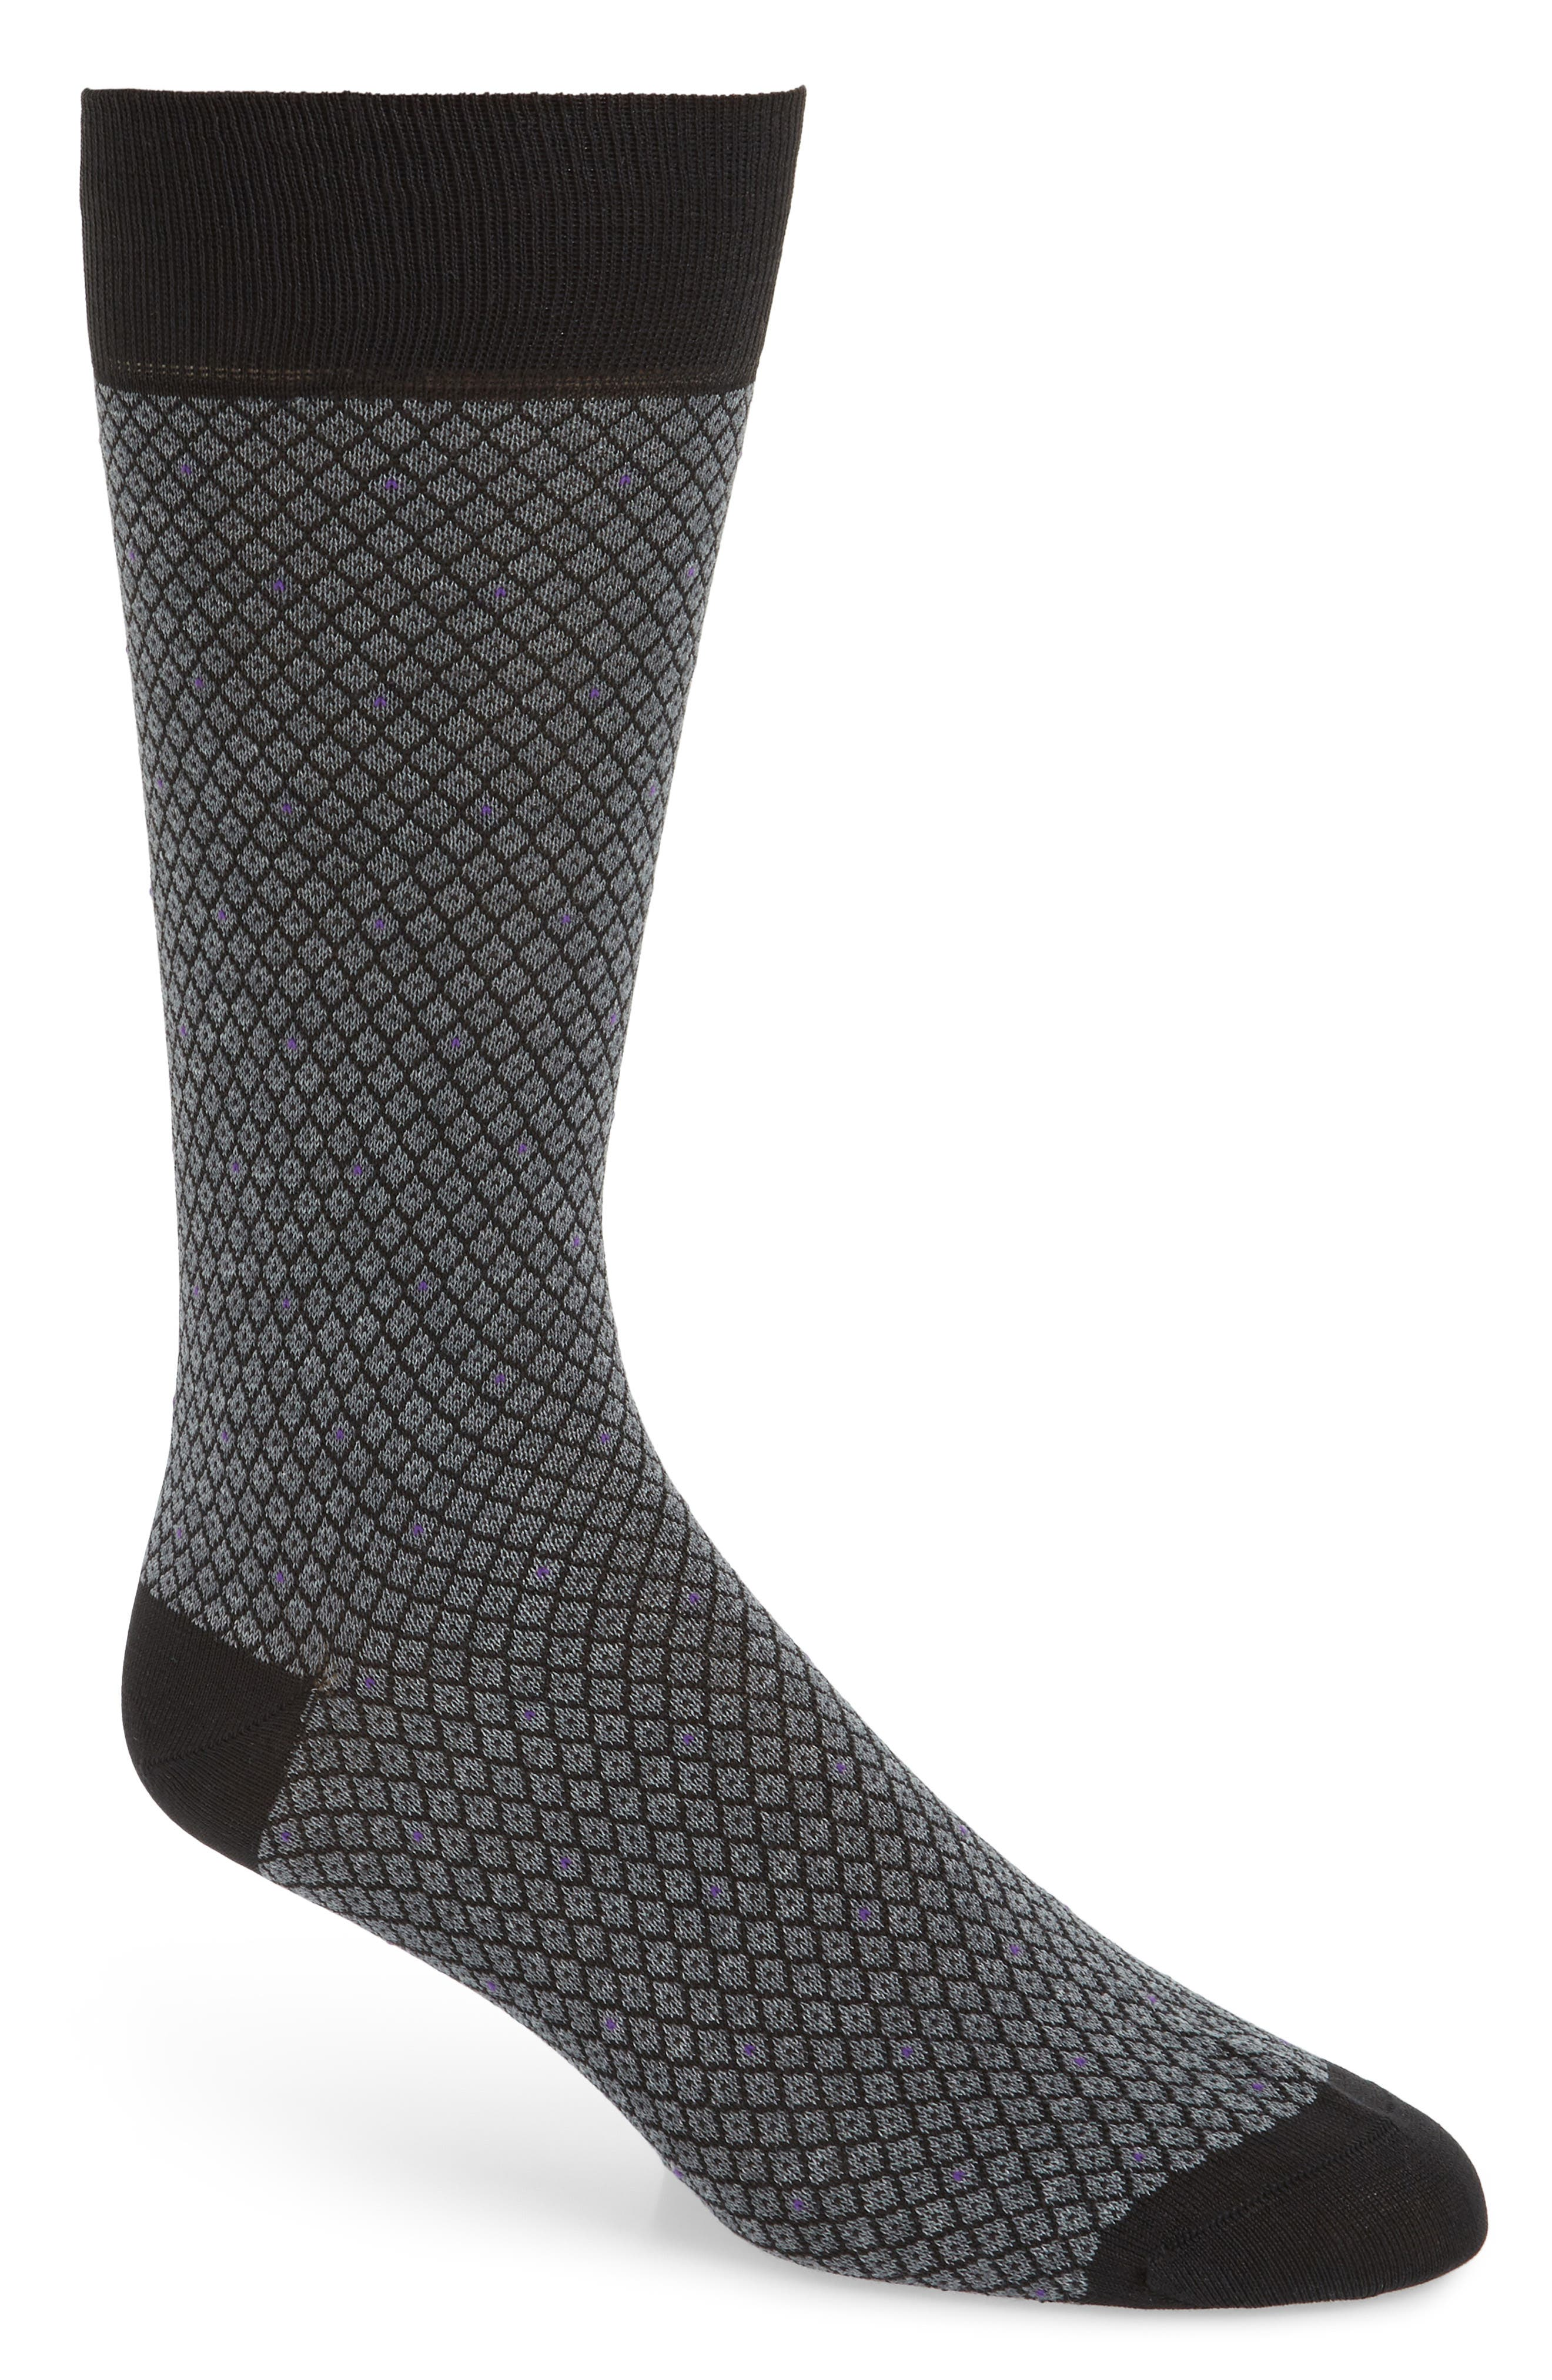 Diamond Jacquard Socks,                             Main thumbnail 1, color,                             020